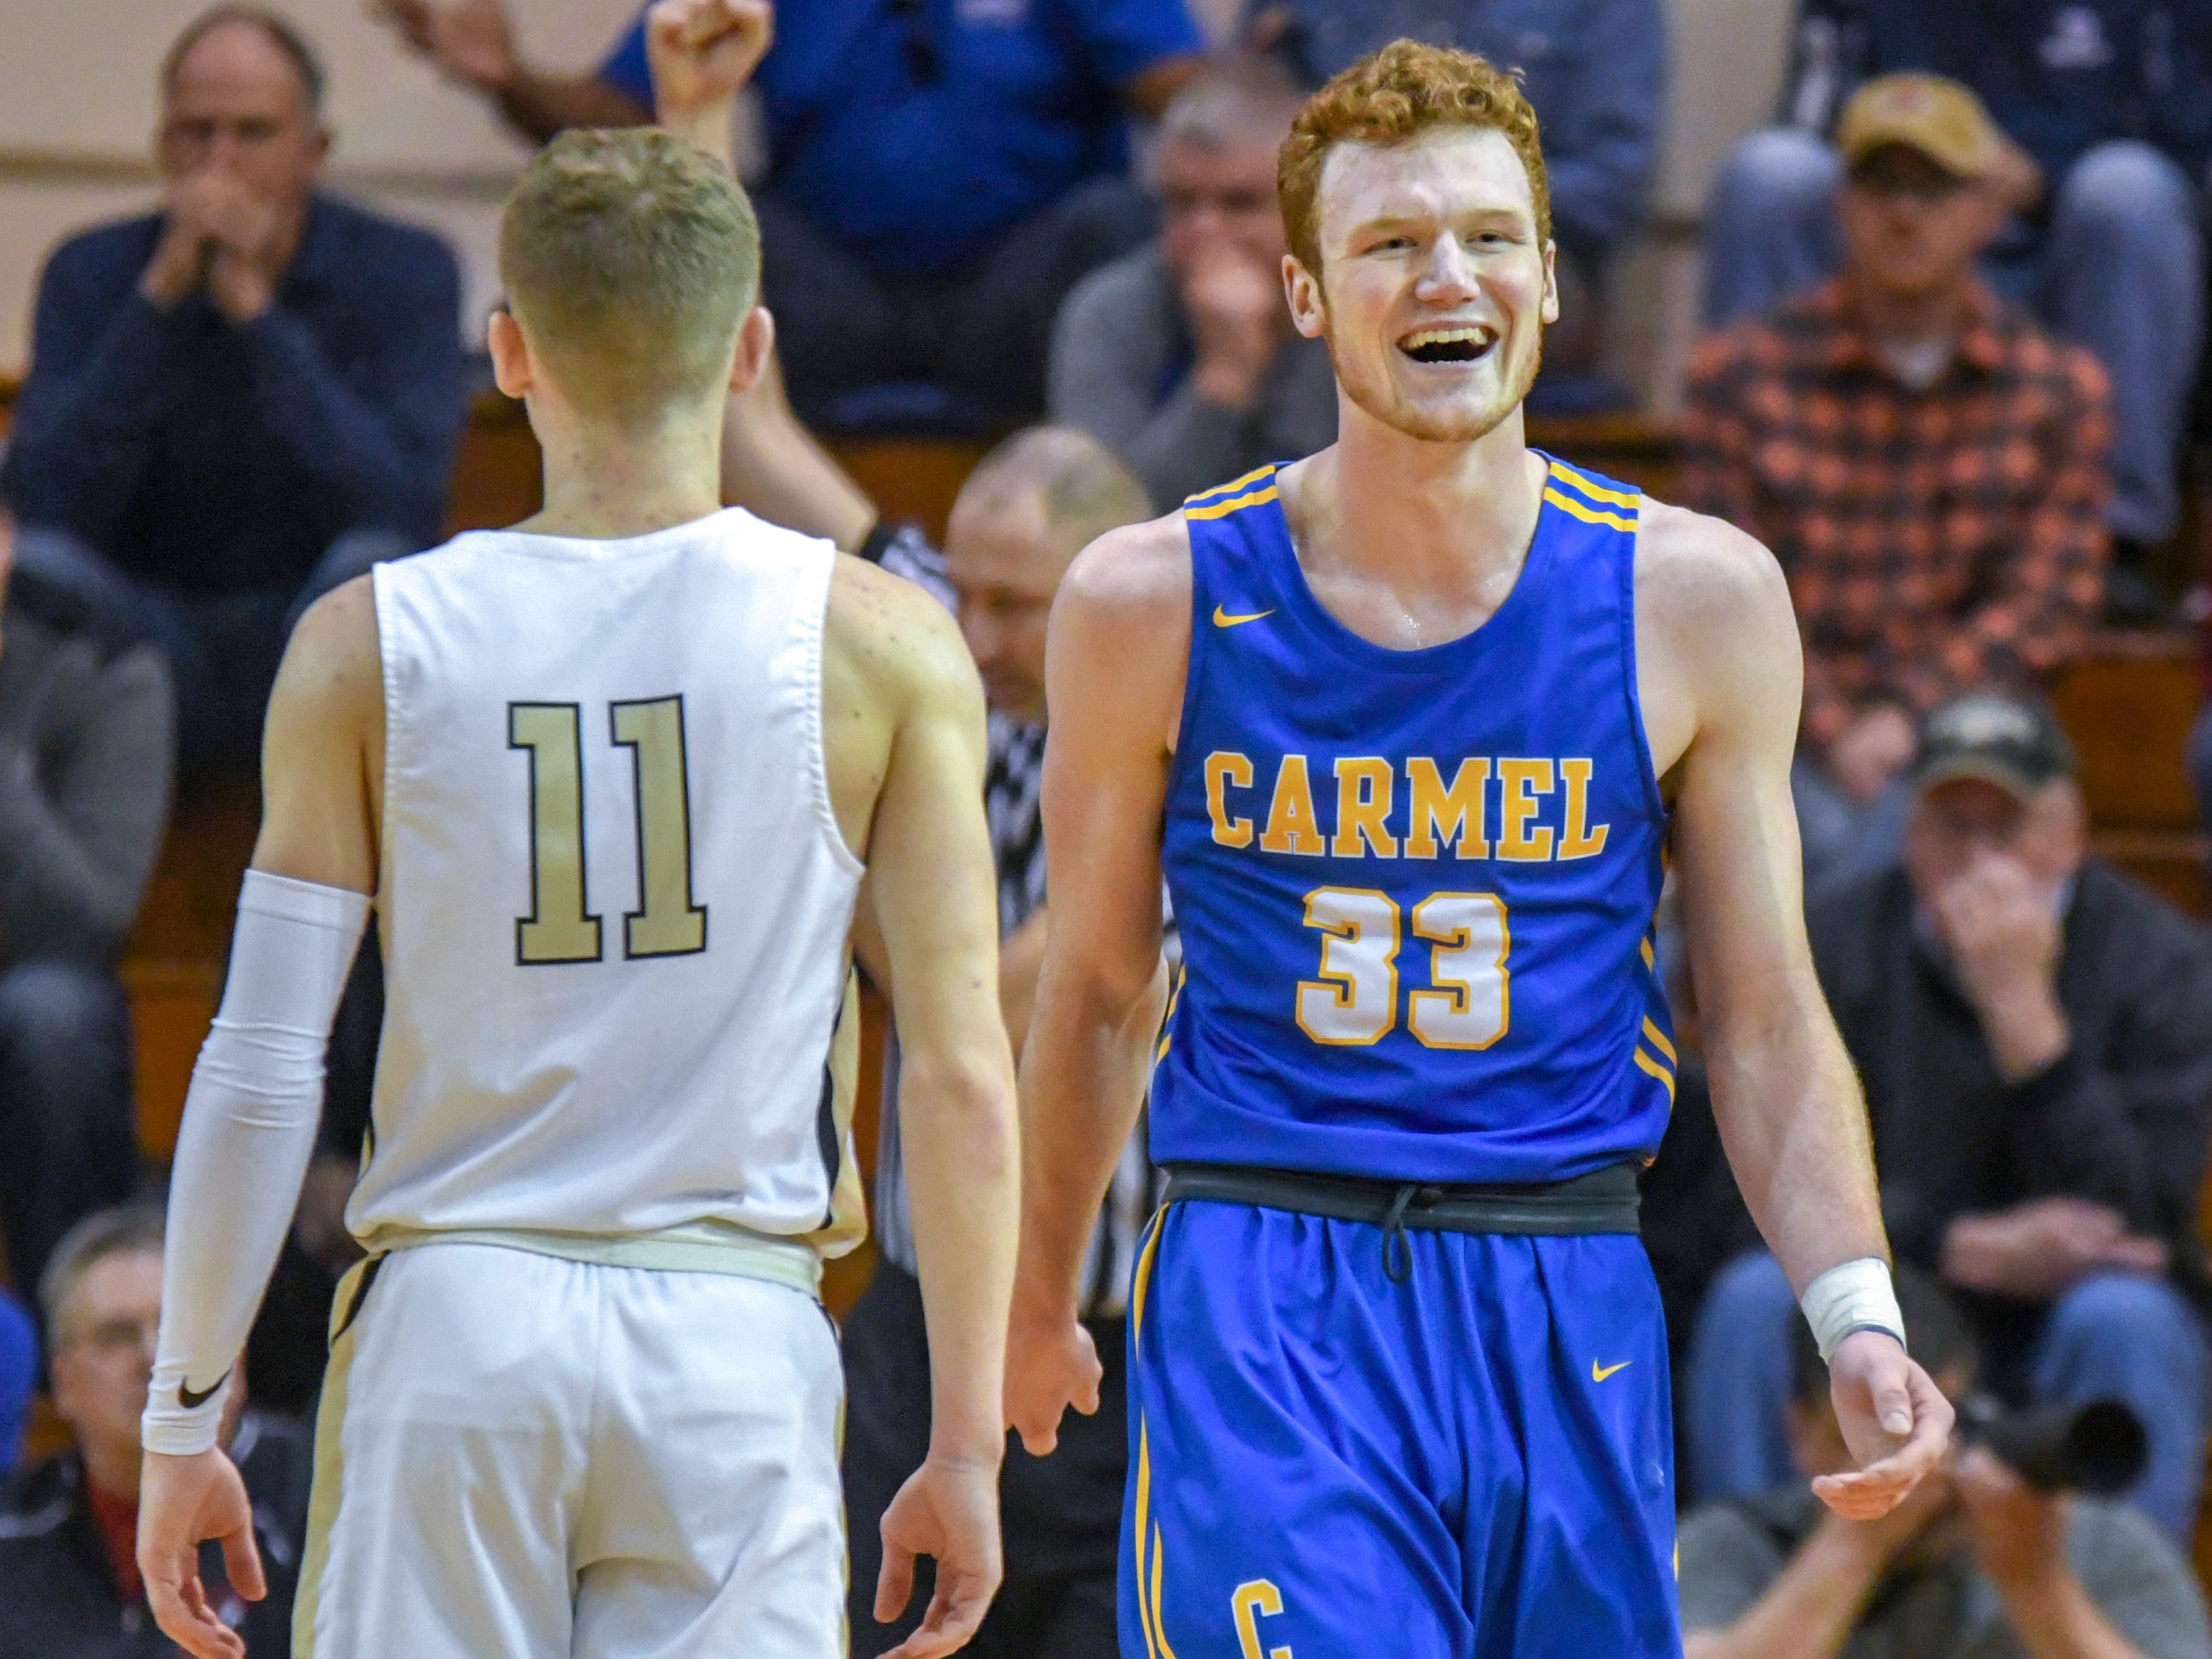 Carmel's John-Michael Mulloy is all smiles during his teams 71-42 win over Penn High School in Lafayette on Saturday March 16, 2019. Carmel moves on to the state finals after winning the 4A semi-state today.